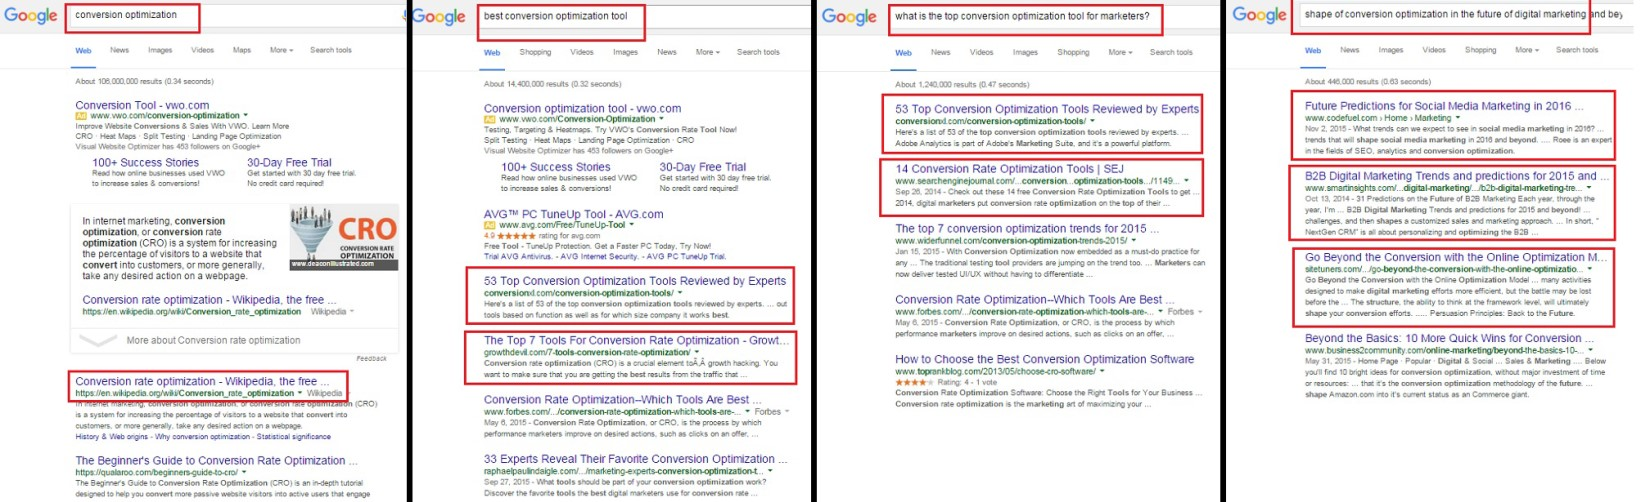 Four search engine results pages side by side